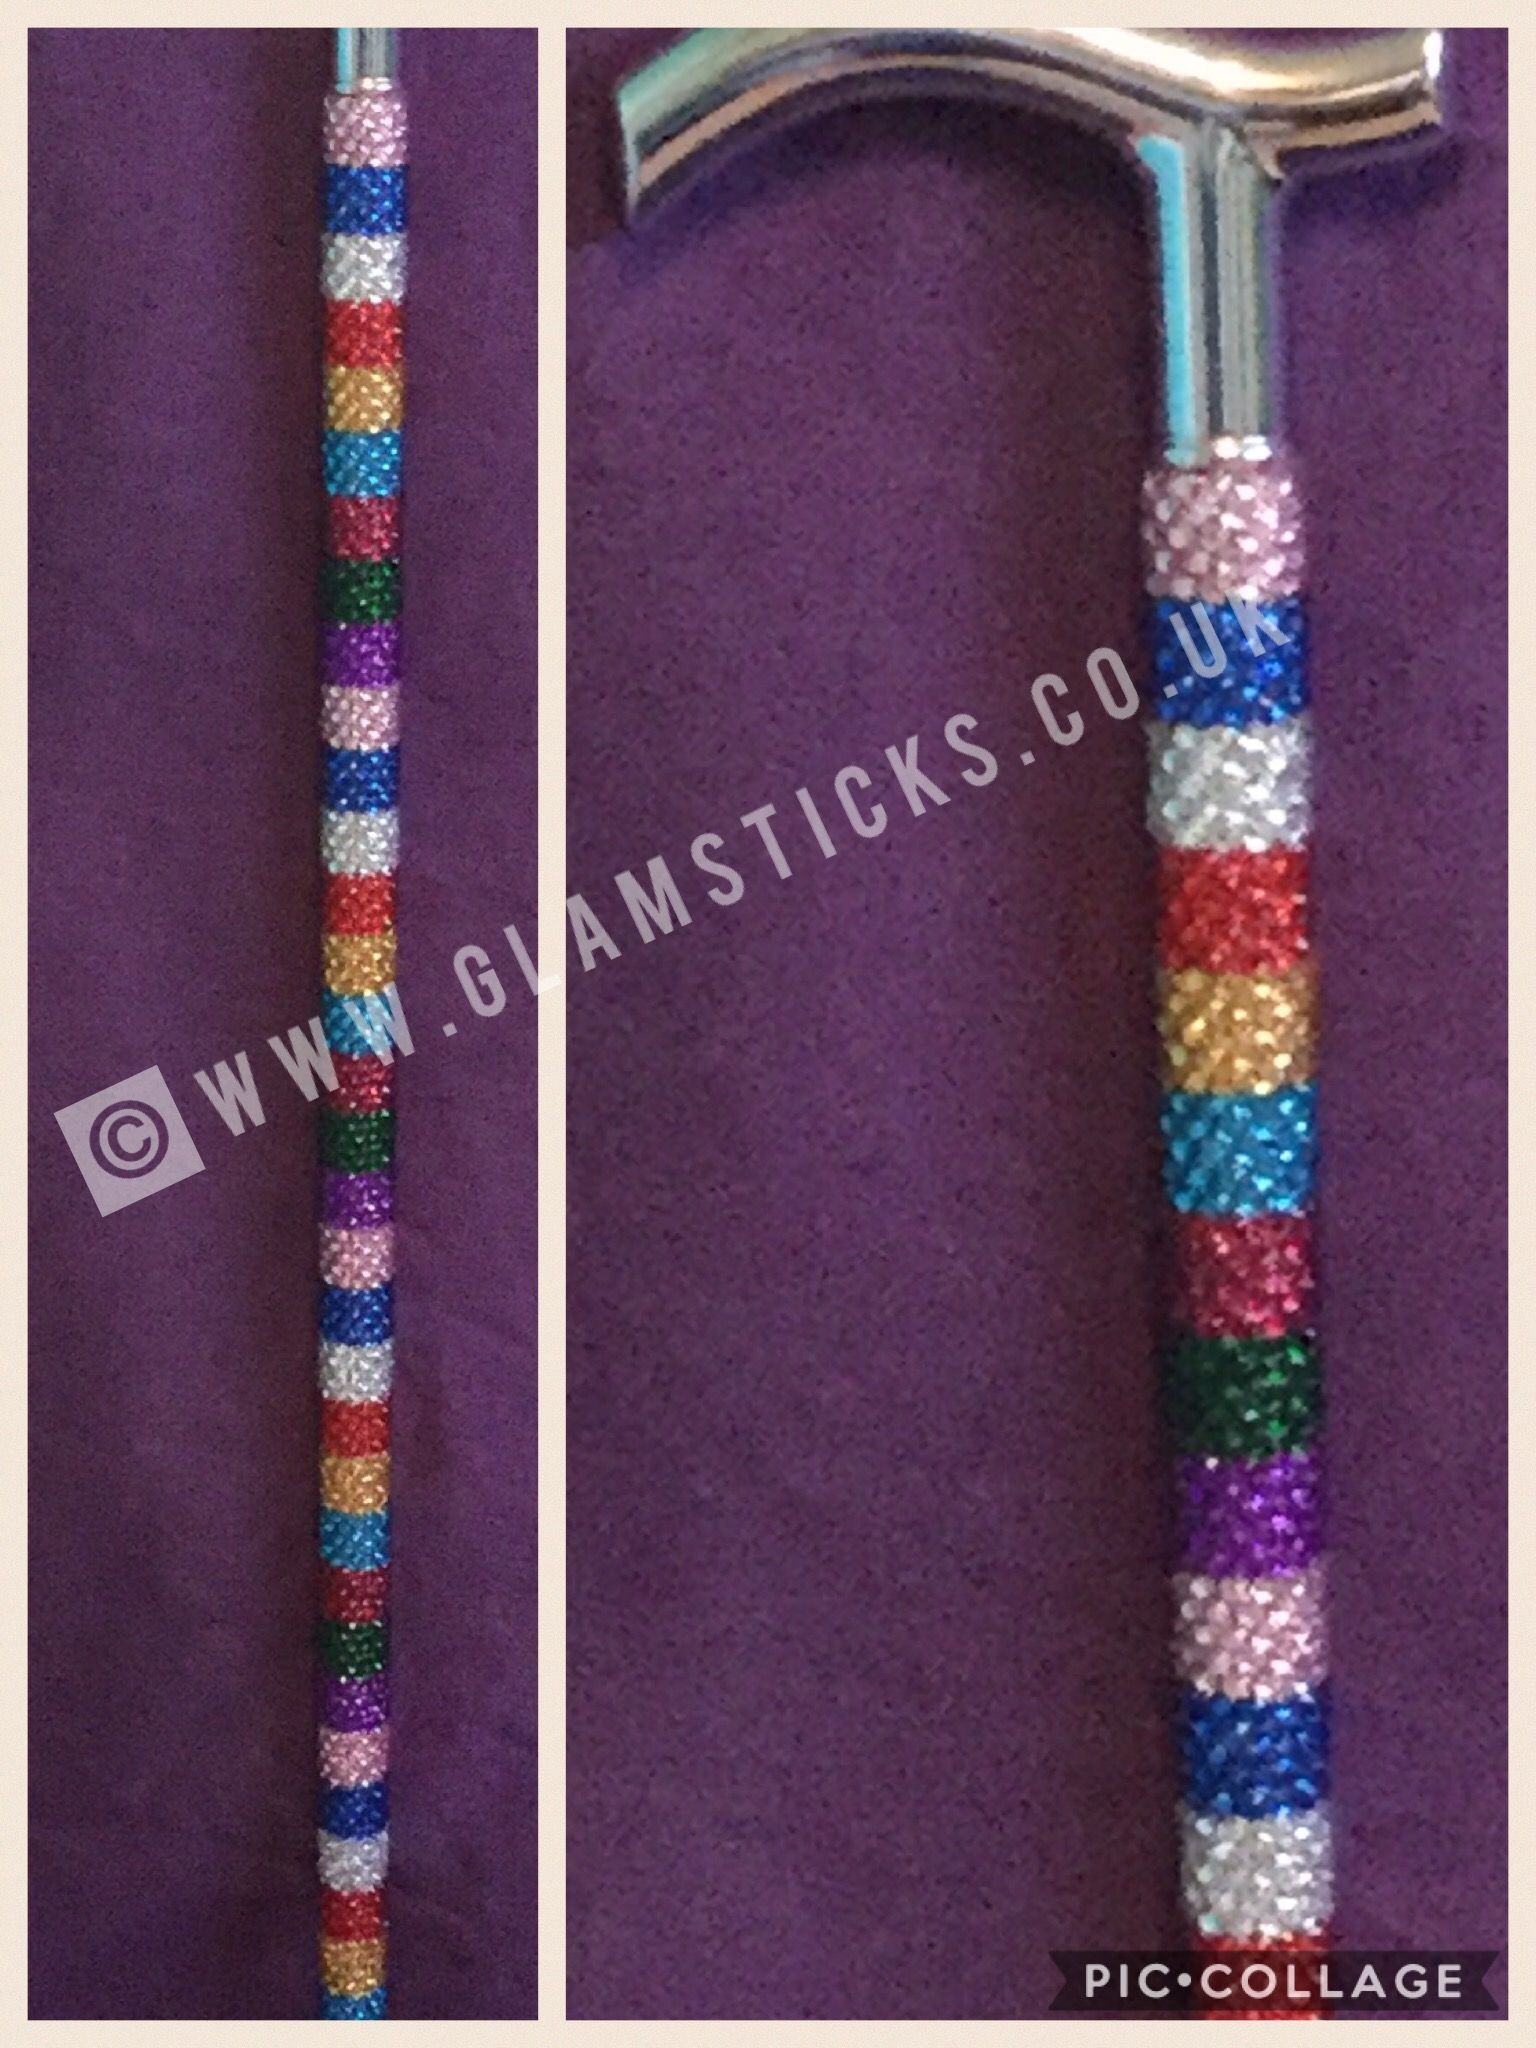 Sparkly Bling Nails: Sparkly Rhinestone Bling Walking Stick By Glamsticks, With